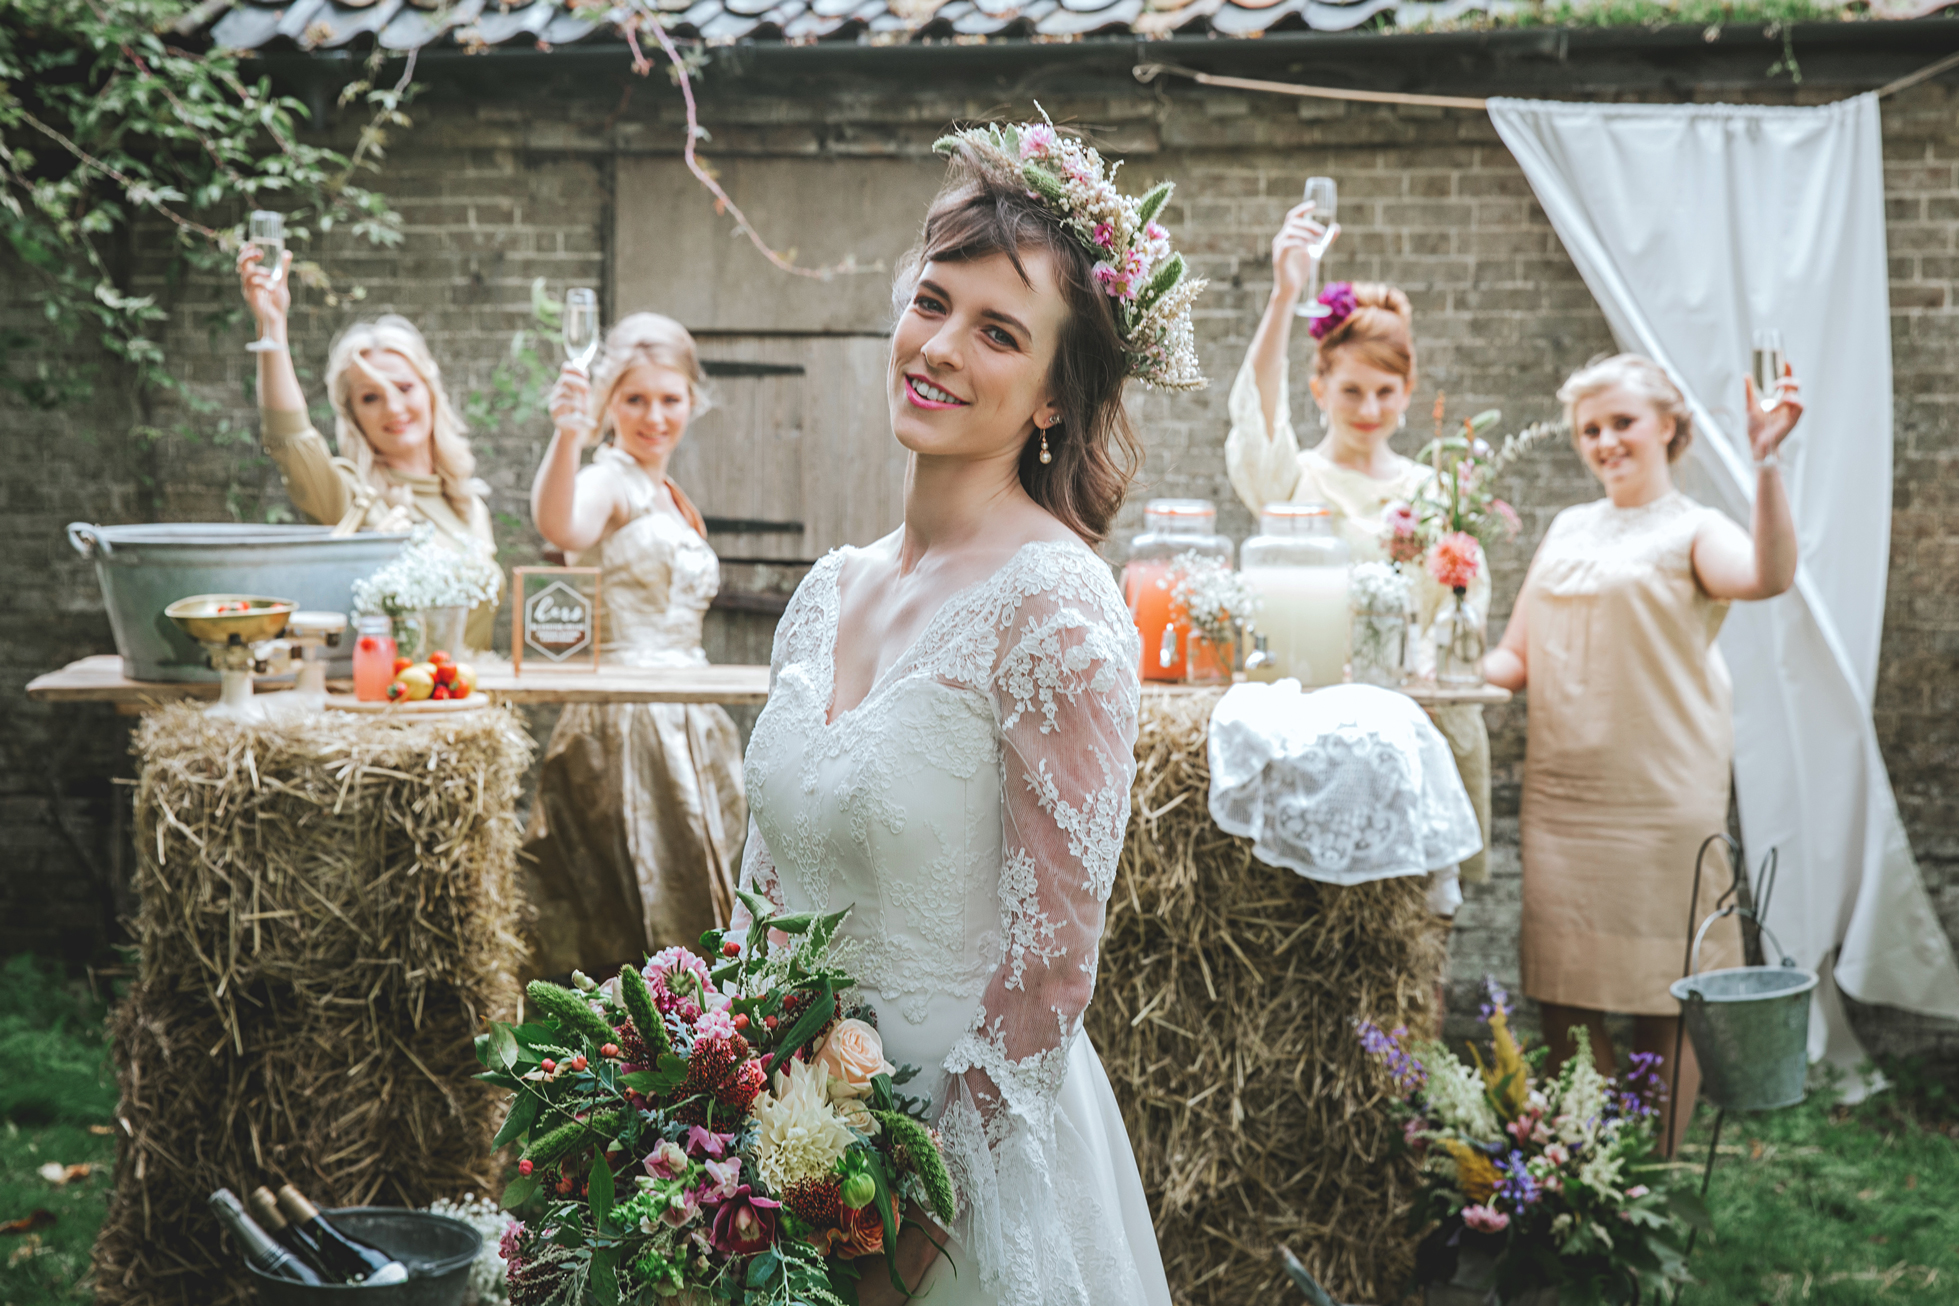 Esther_Wild_Little_Horse_Box_Norfolk_Wedding_IMG_2824.jpg